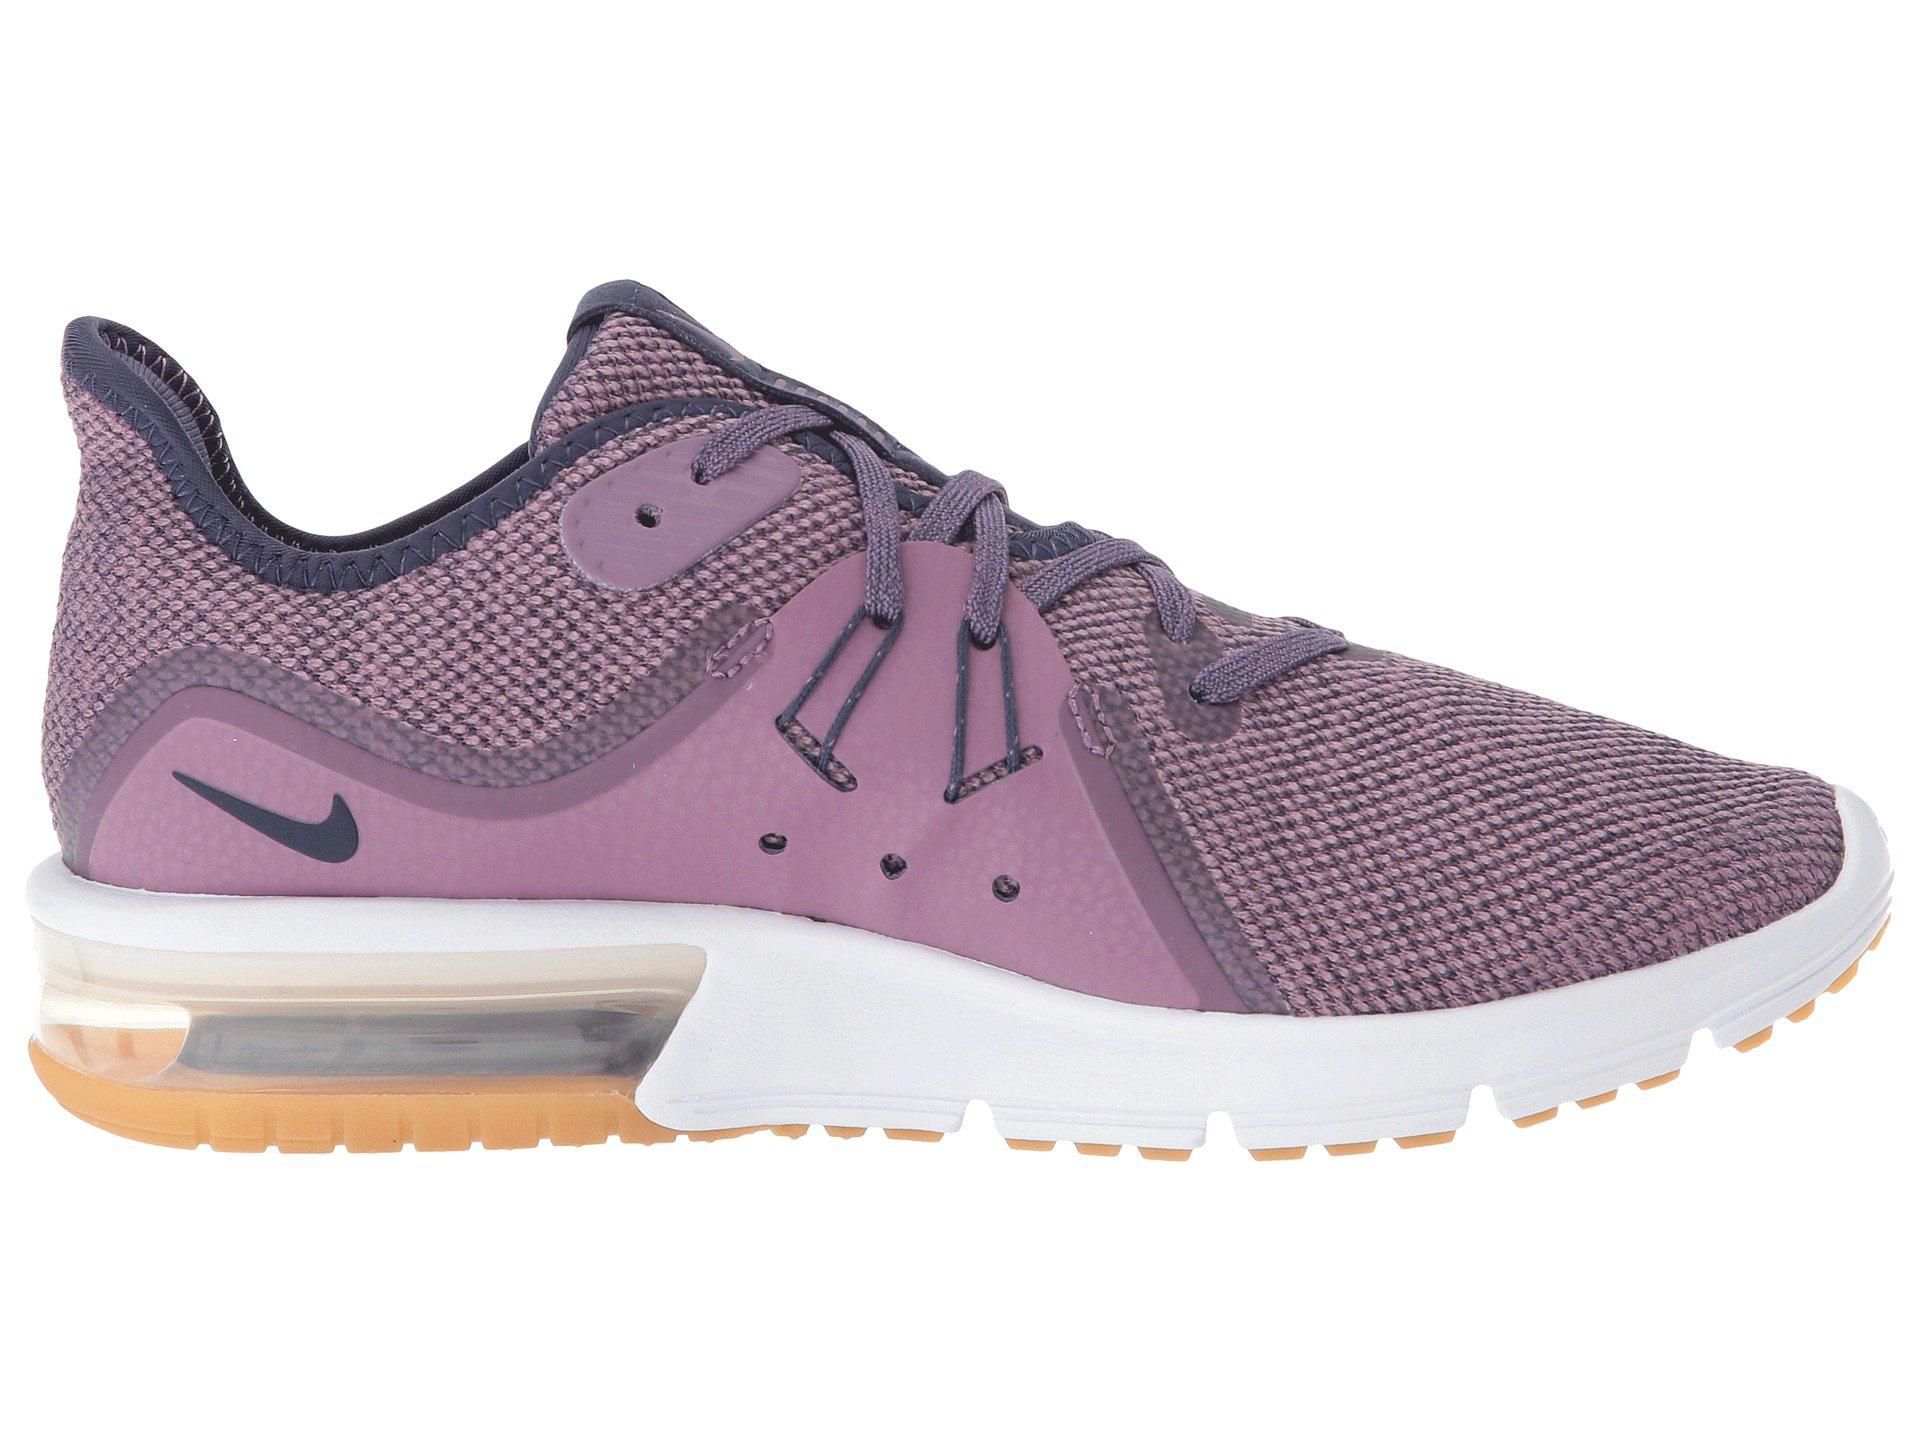 9b7eac3ce840 Lyst - Nike Air Max Sequent 3 in Purple - Save 25%